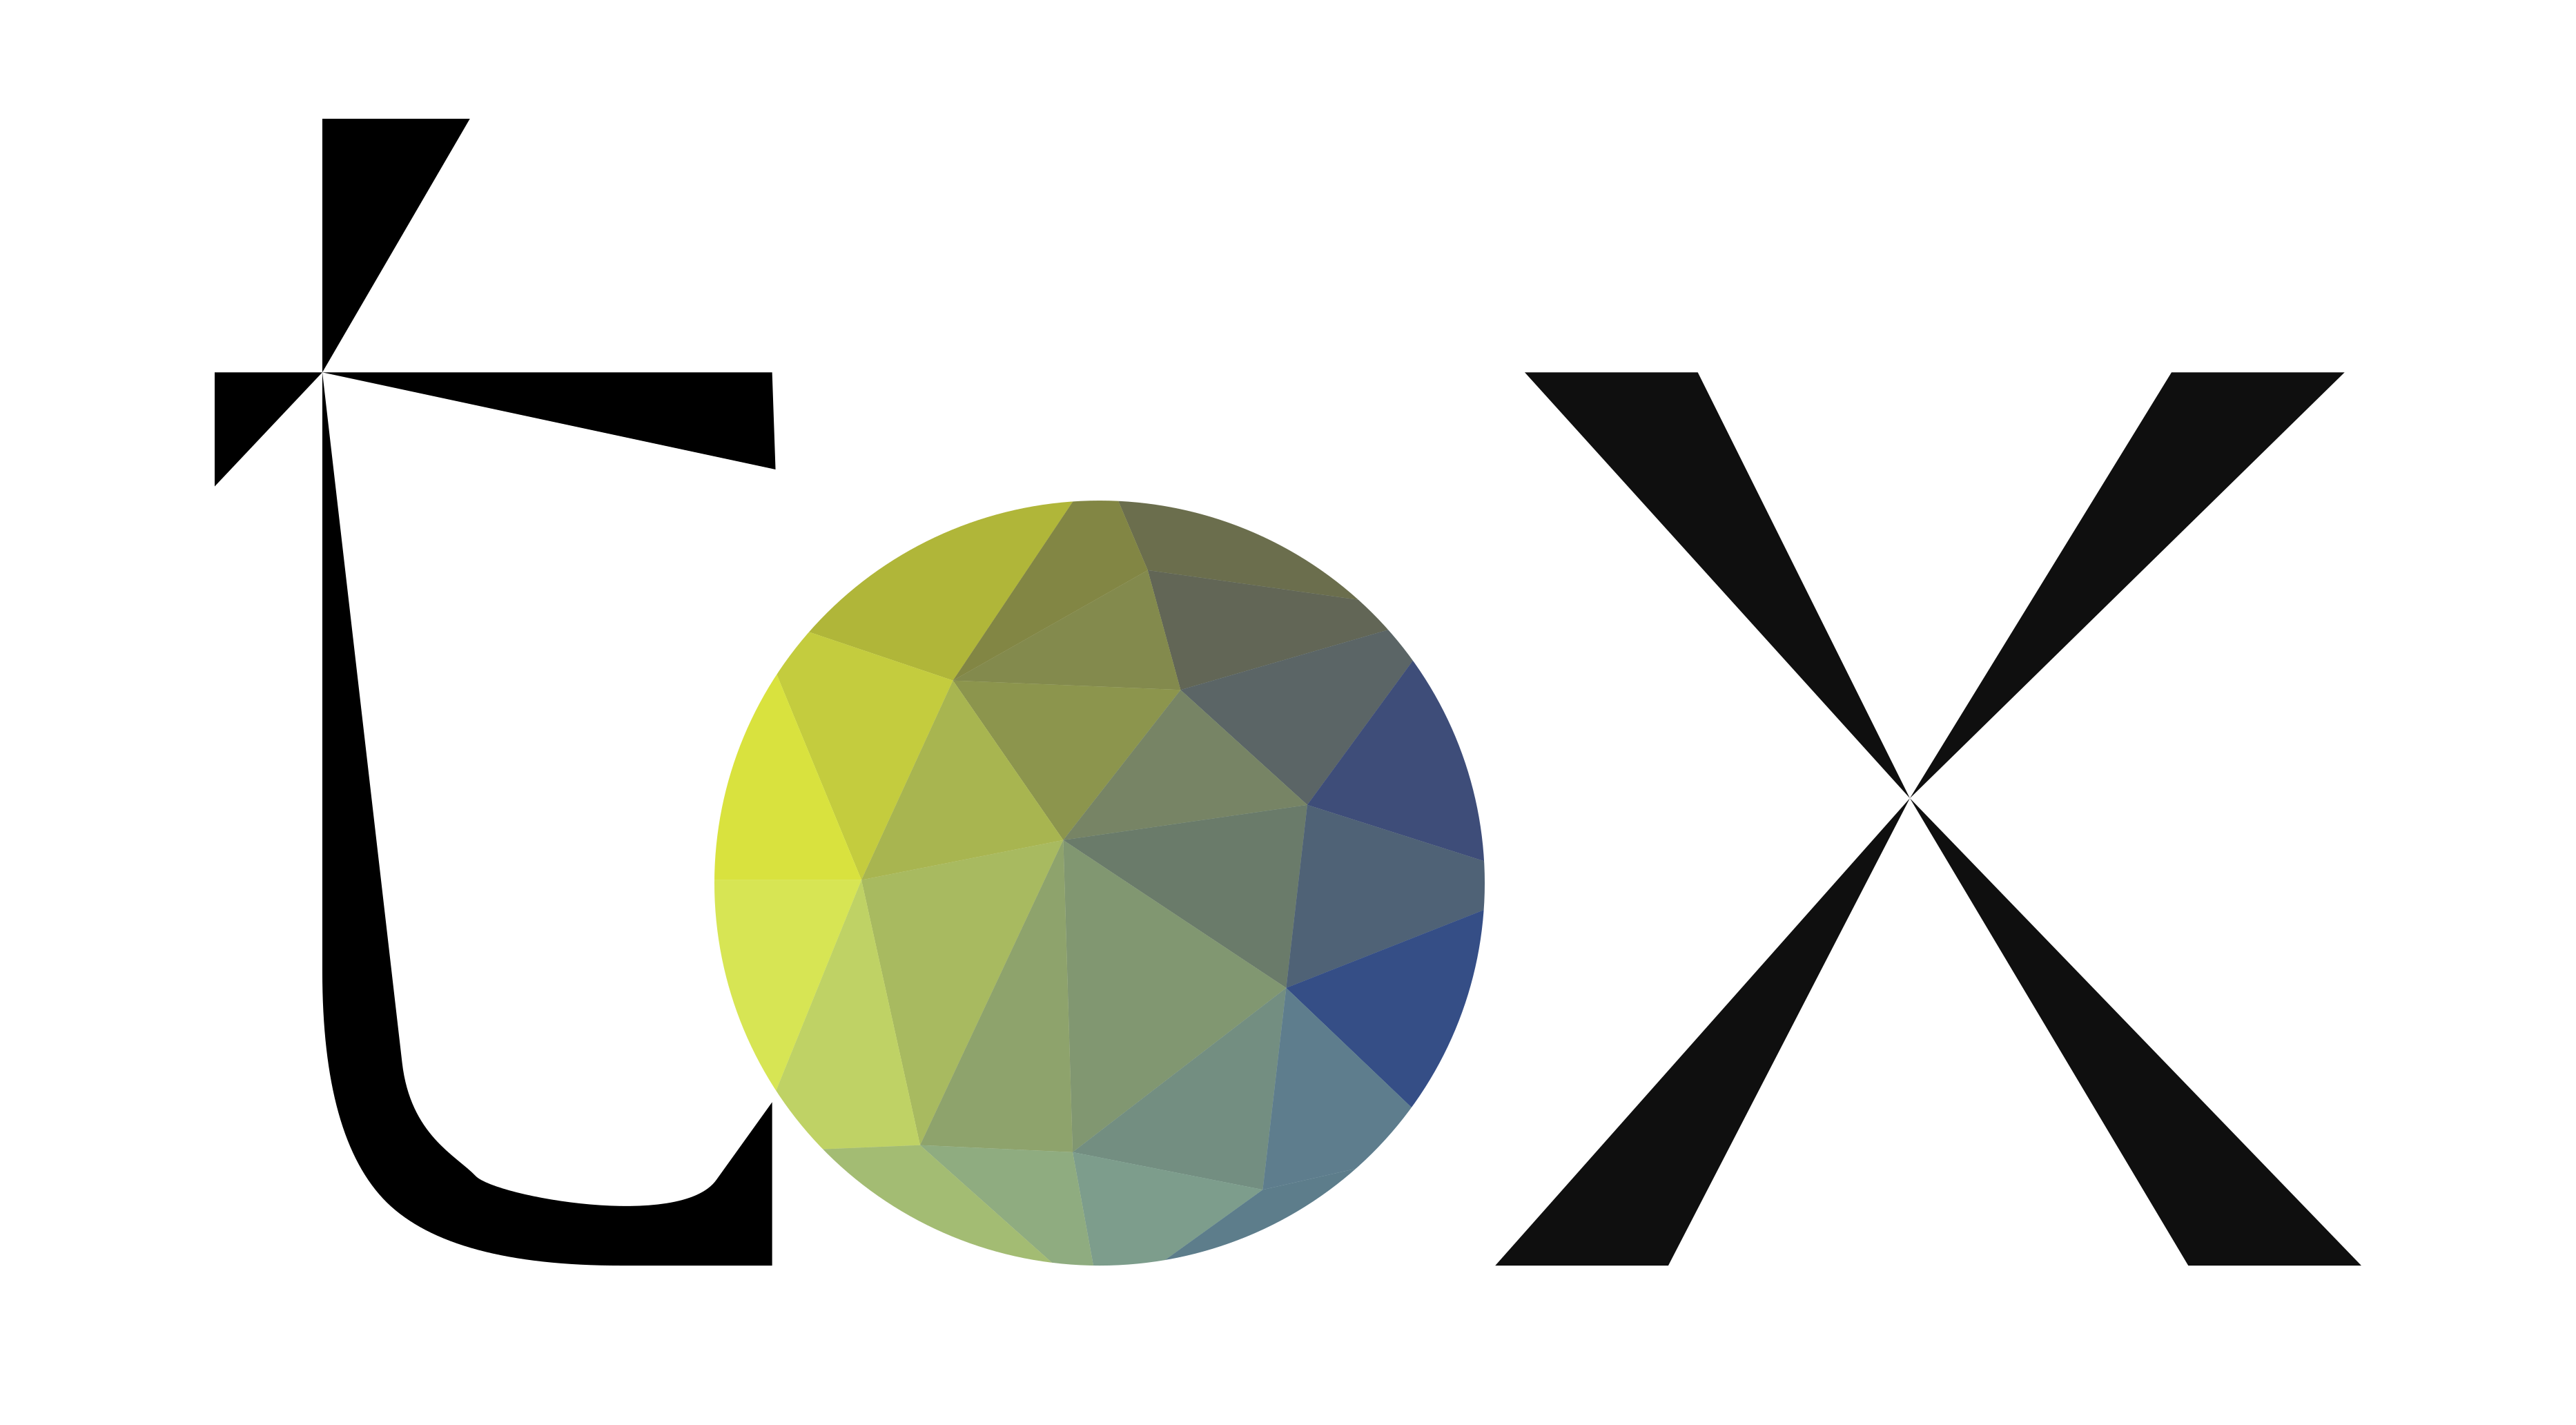 tox3 svg